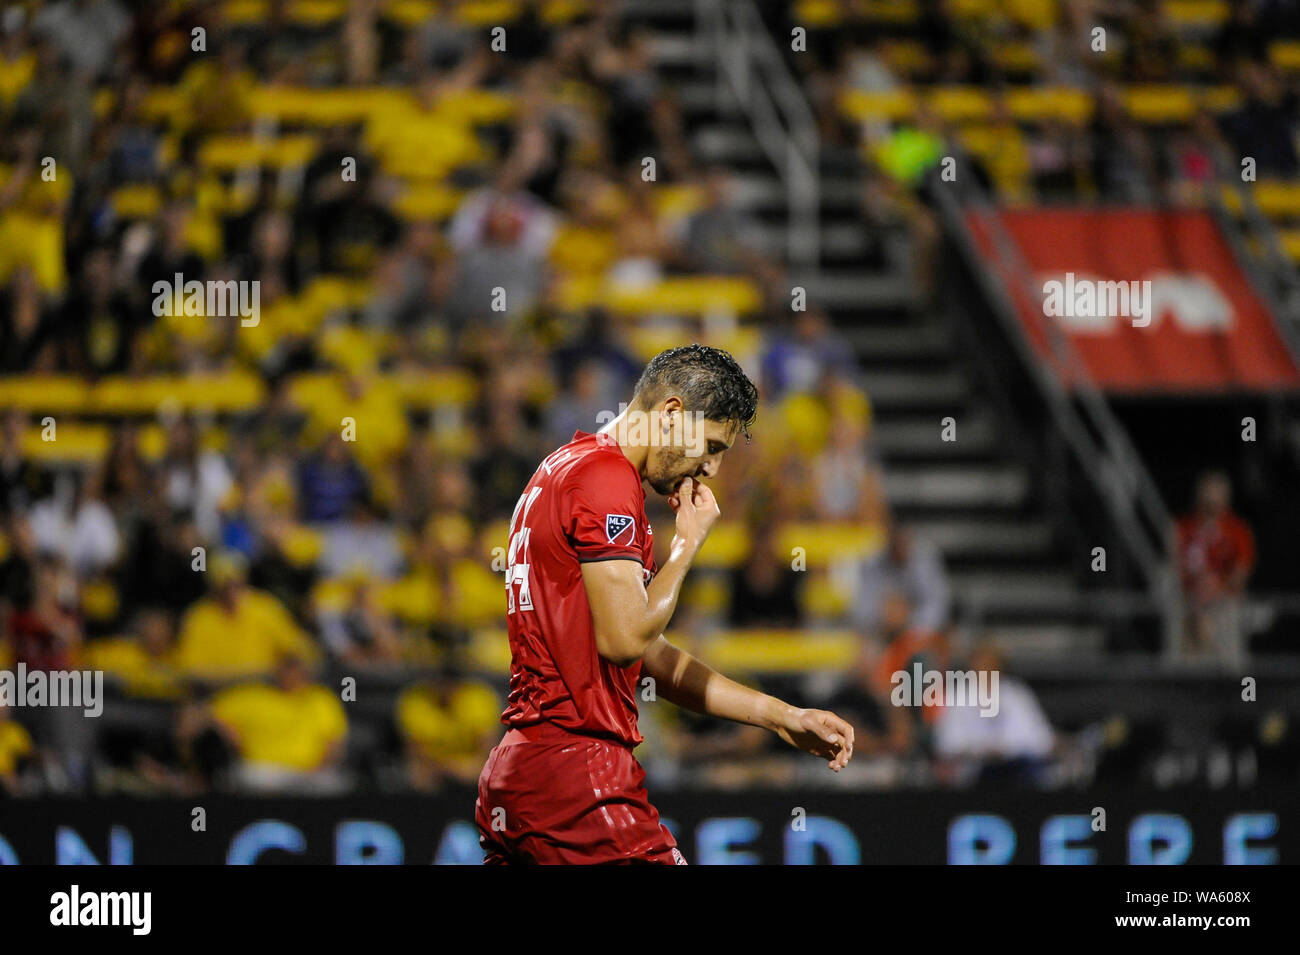 Saturday, August 17, 2019: Toronto FC defender Omar Gonzalez (44) in the second half of the match between Toronto FC and Columbus Crew SC at MAPFRE Stadium, in Columbus OH. Mandatory Photo Credit: Dorn Byg/Cal Sport Media. Toronto FC 2 - Columbus Crew SC 2 at the end of the first half. Stock Photo